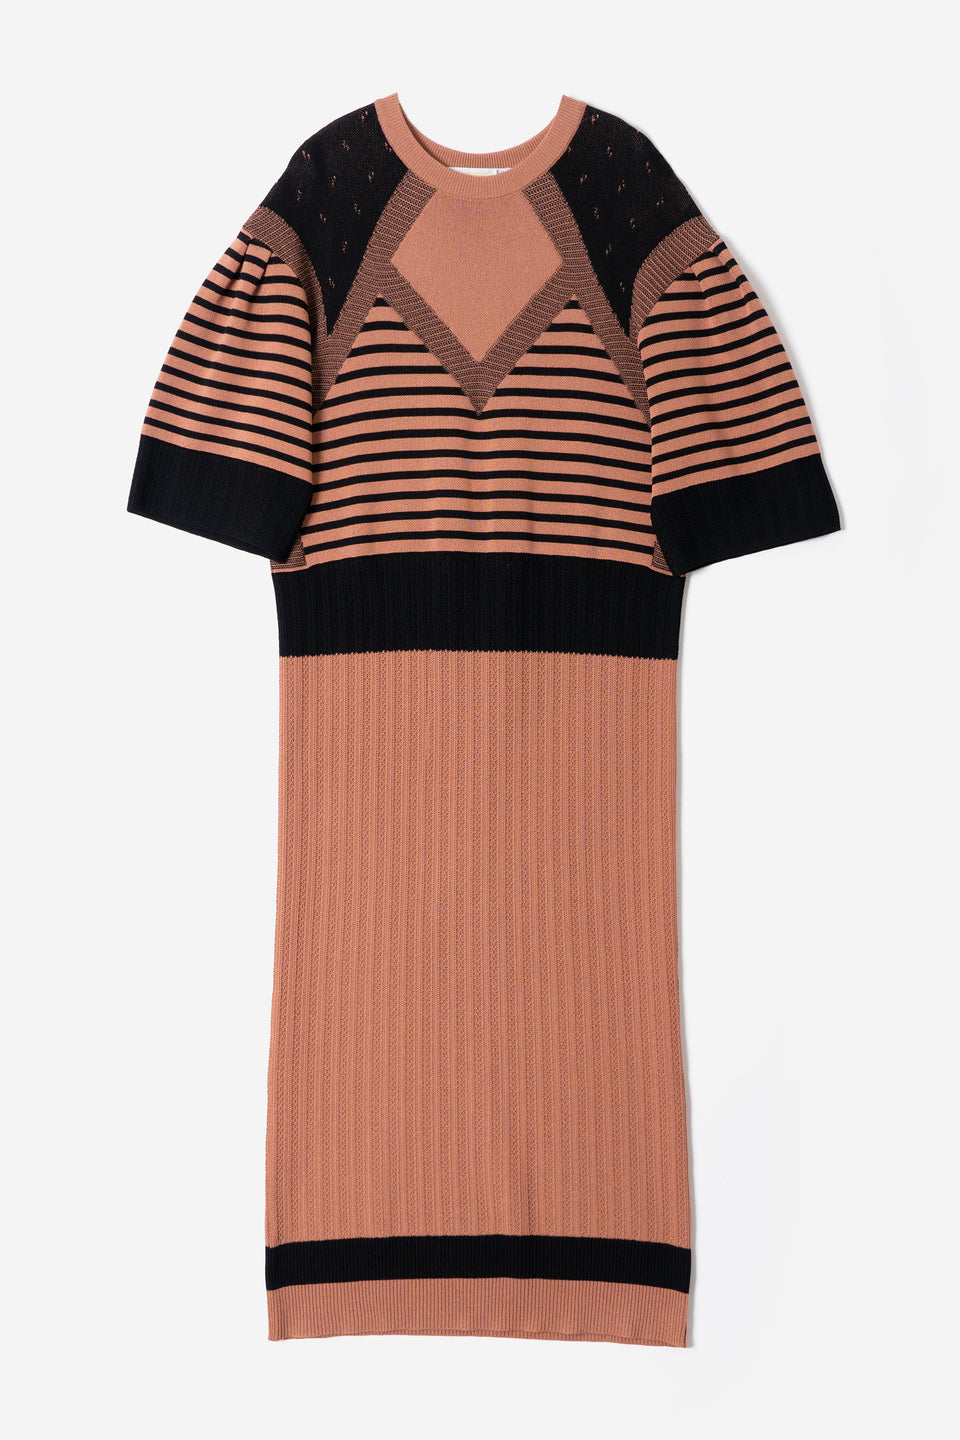 Pattern Stripe Knit Dress in Terracotta Mix